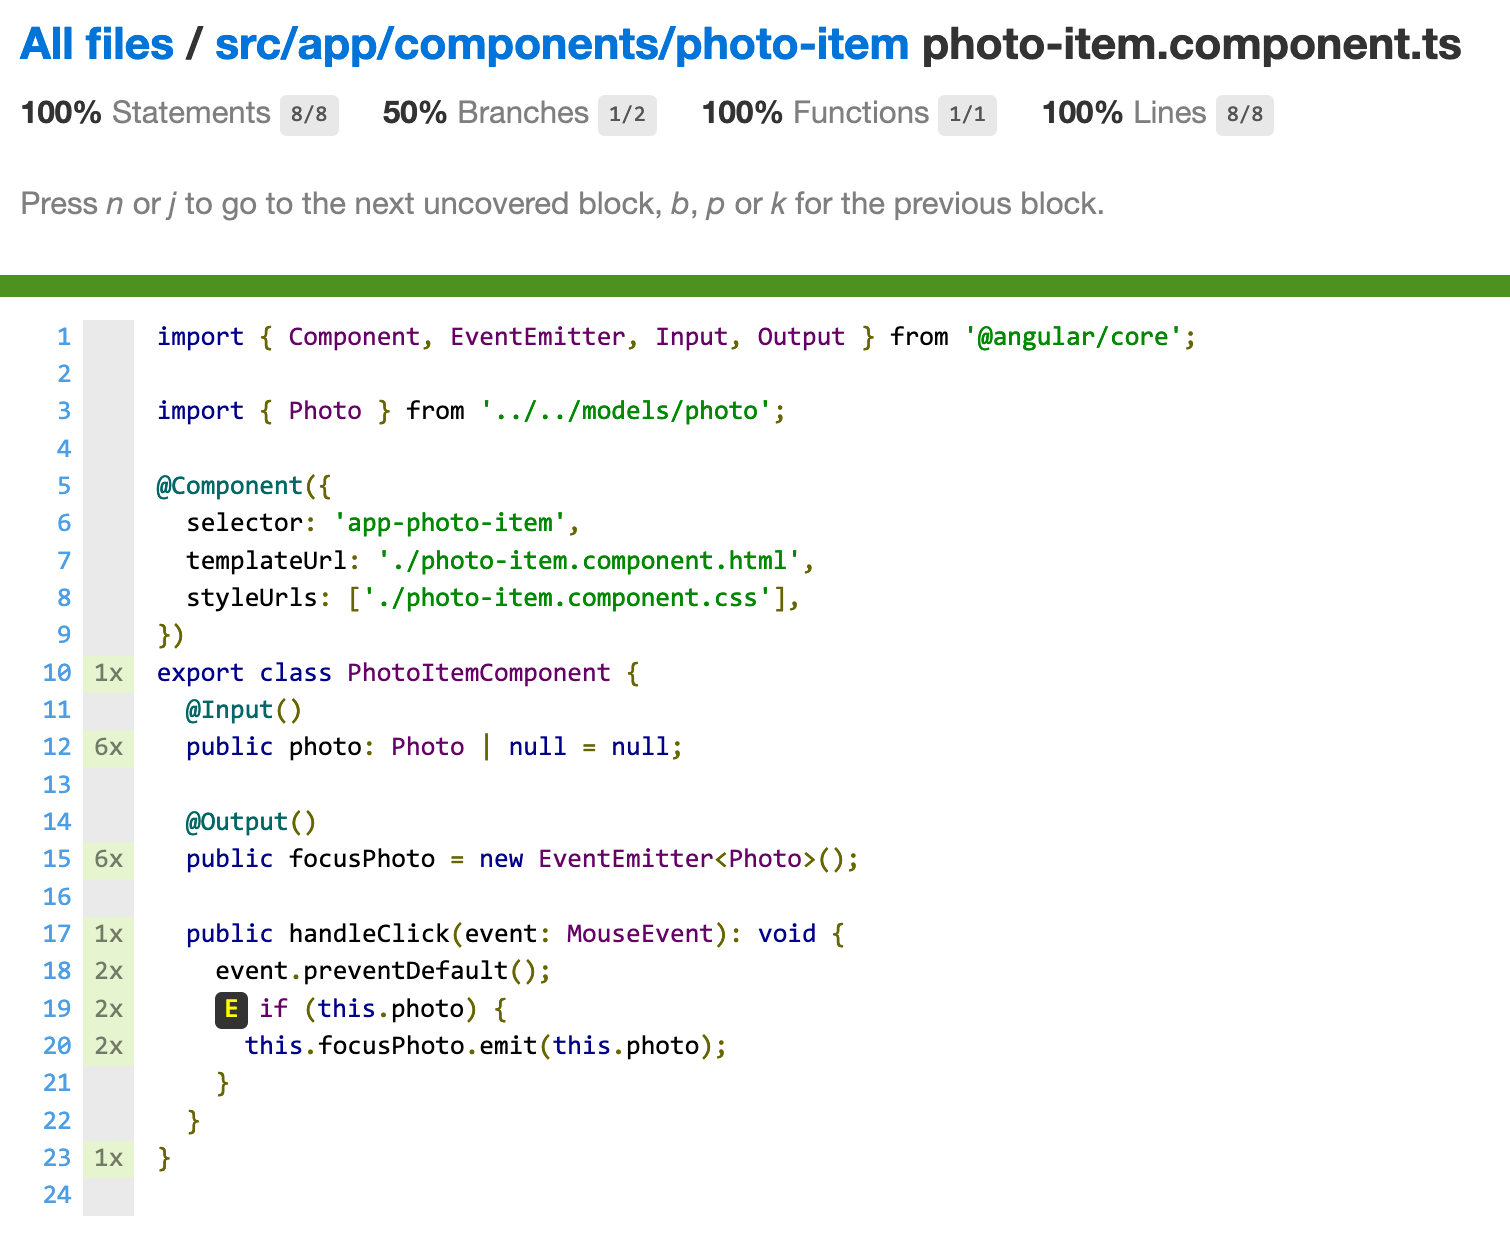 Code coverage report for photo-item.component.ts. All statements, functions and lines are covered. There is one condition with two branches, one of which is not covered.